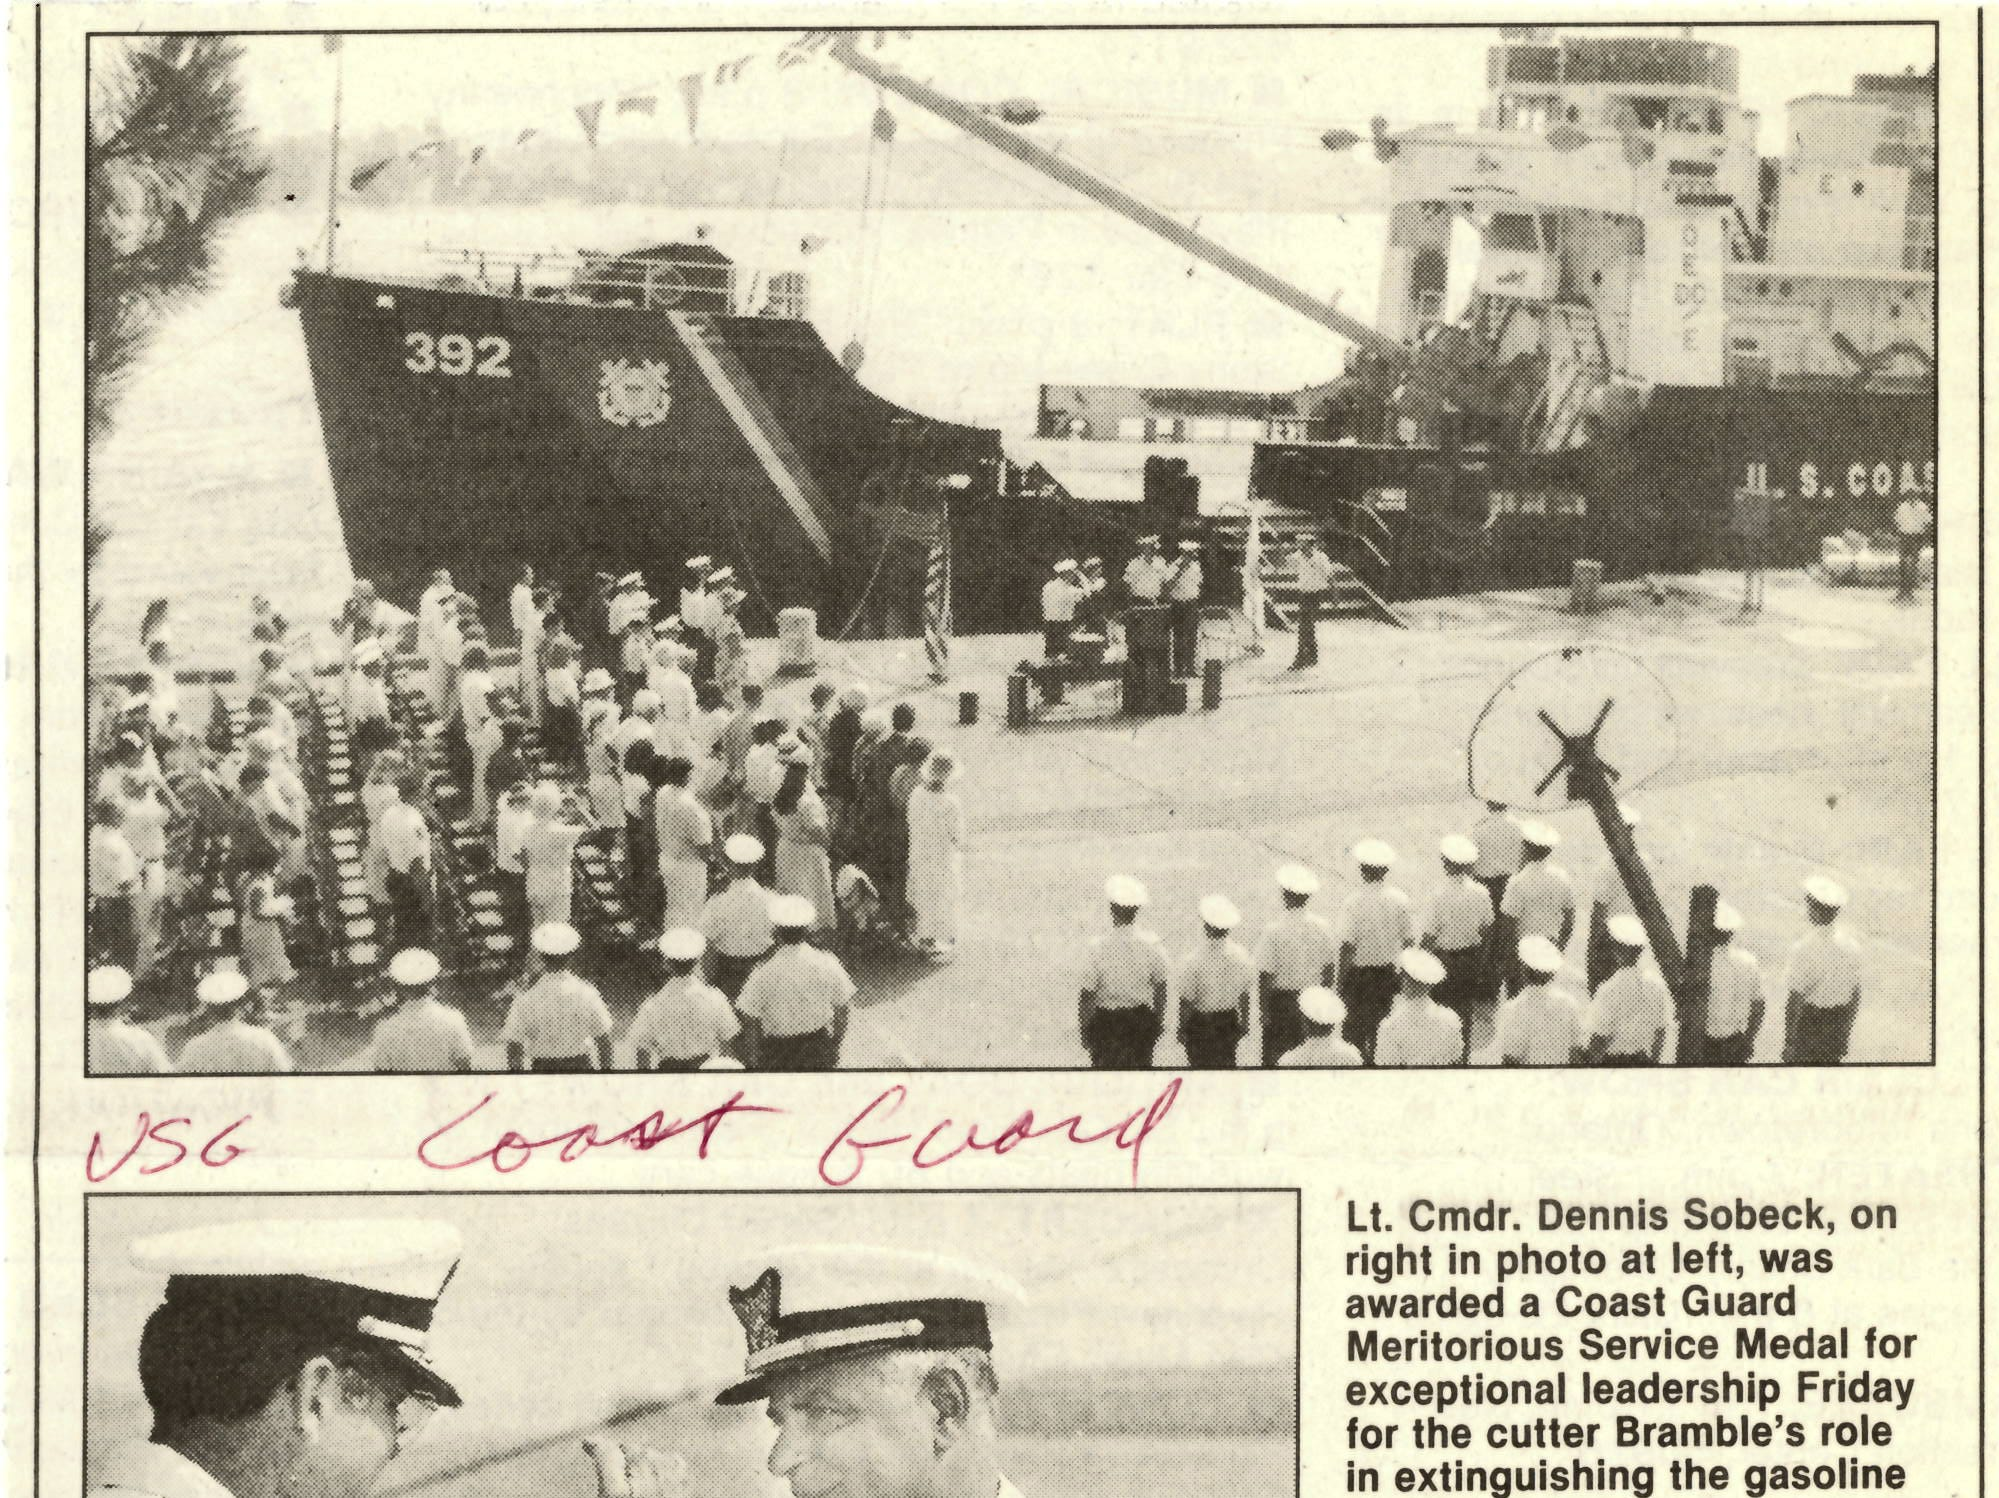 A newspaper clipping shows a change of command ceremony being held on the dock near the USCGC Bramble.